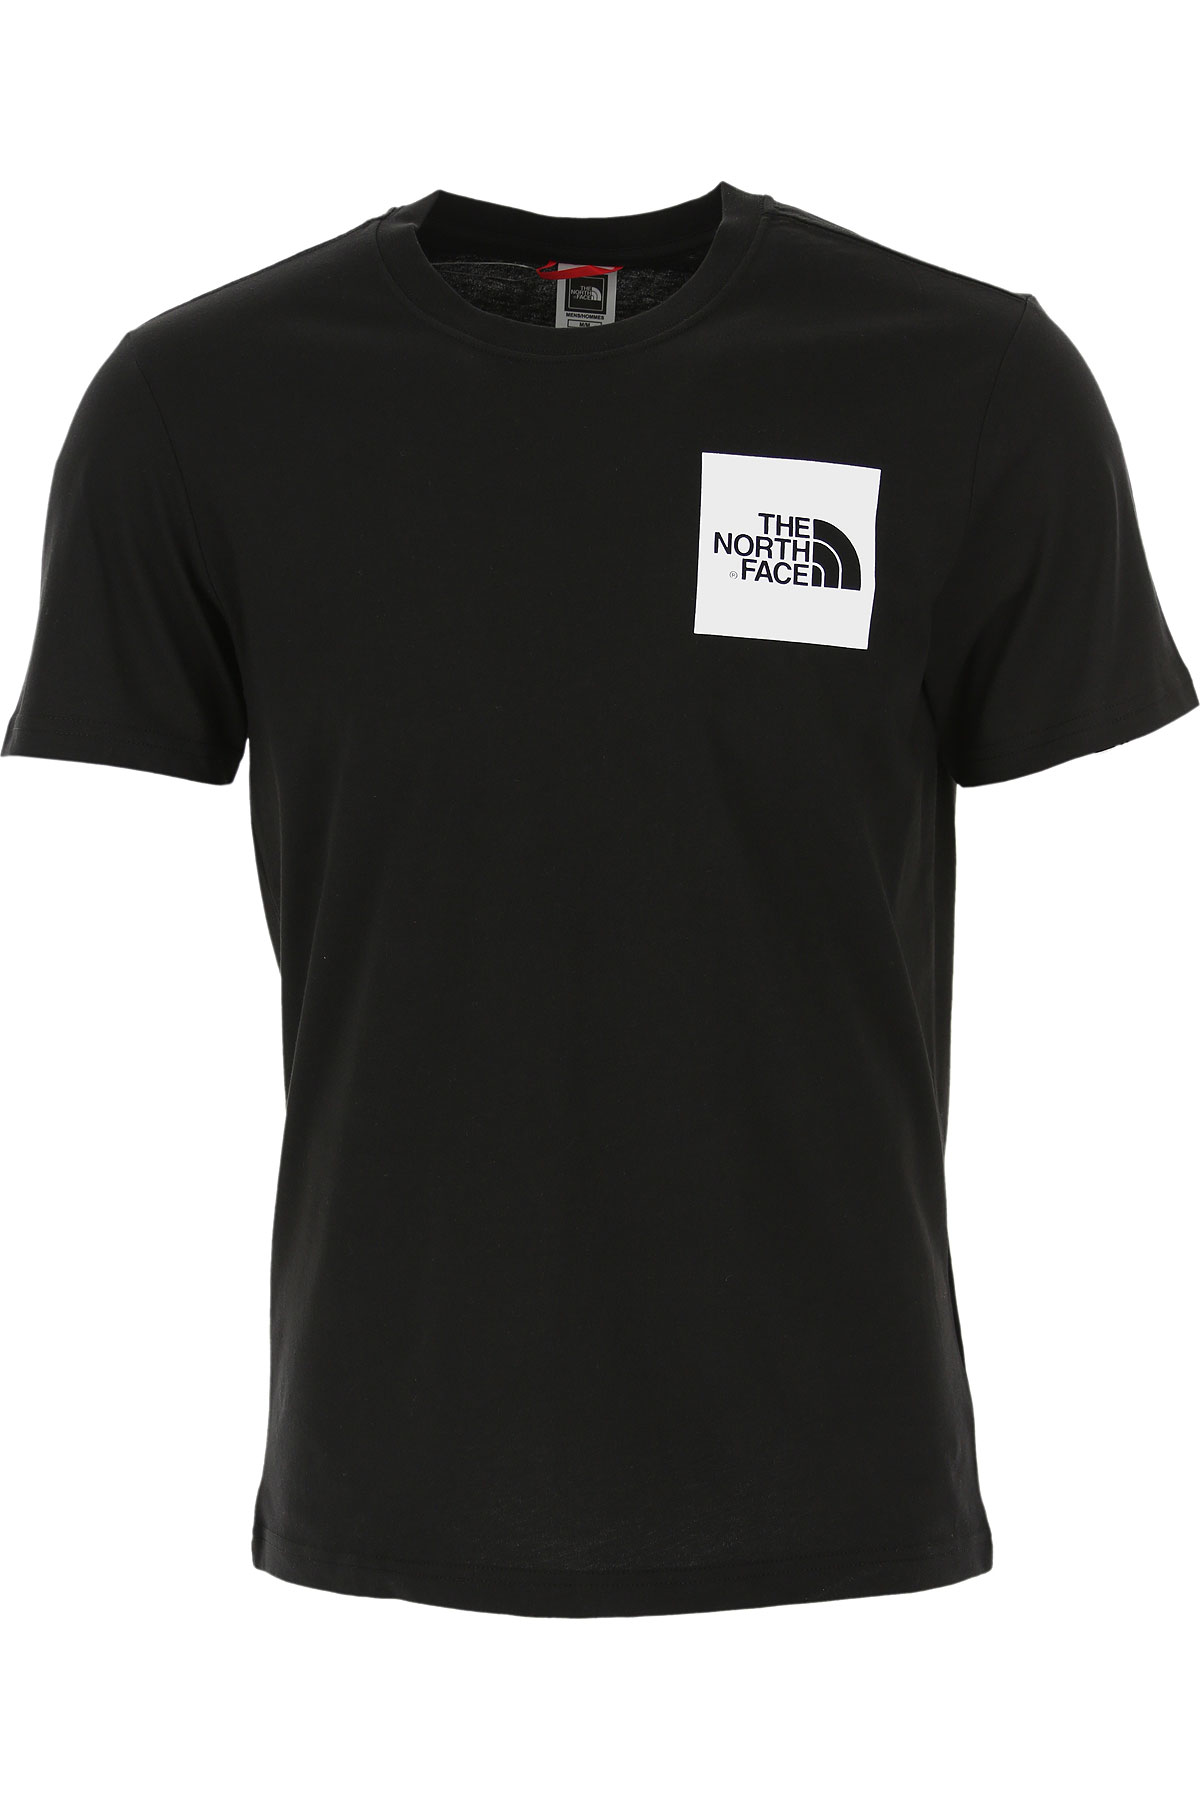 The North Face T-Shirt for Men On Sale, Black, Cotton, 2019, M XS